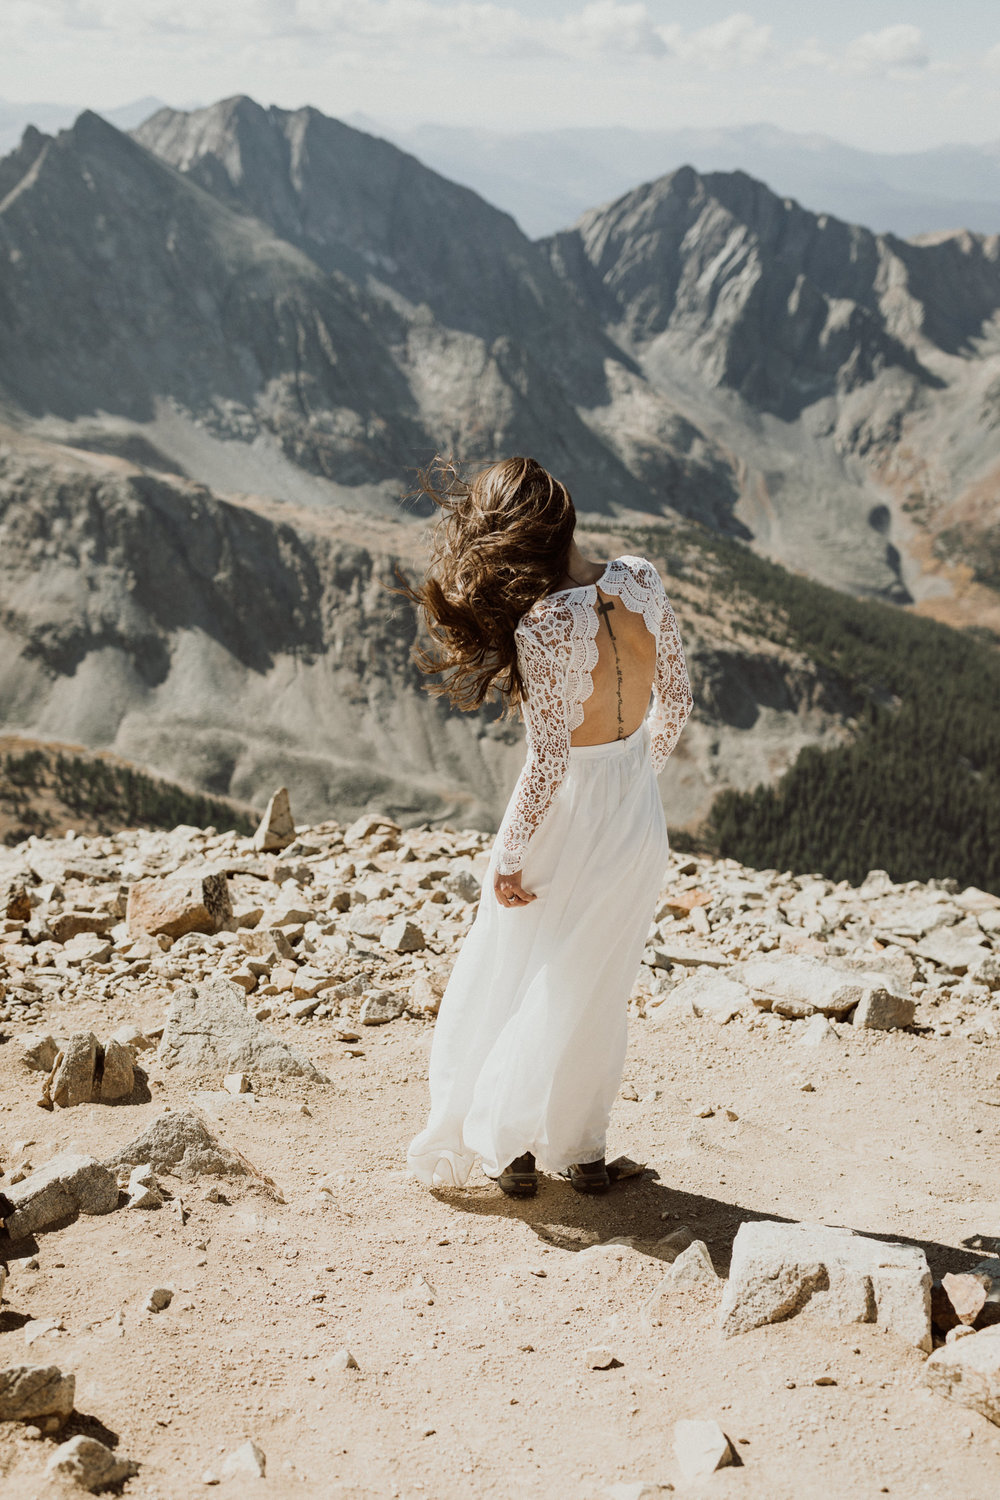 fourteener-adventure-wedding-photographer-107.jpg